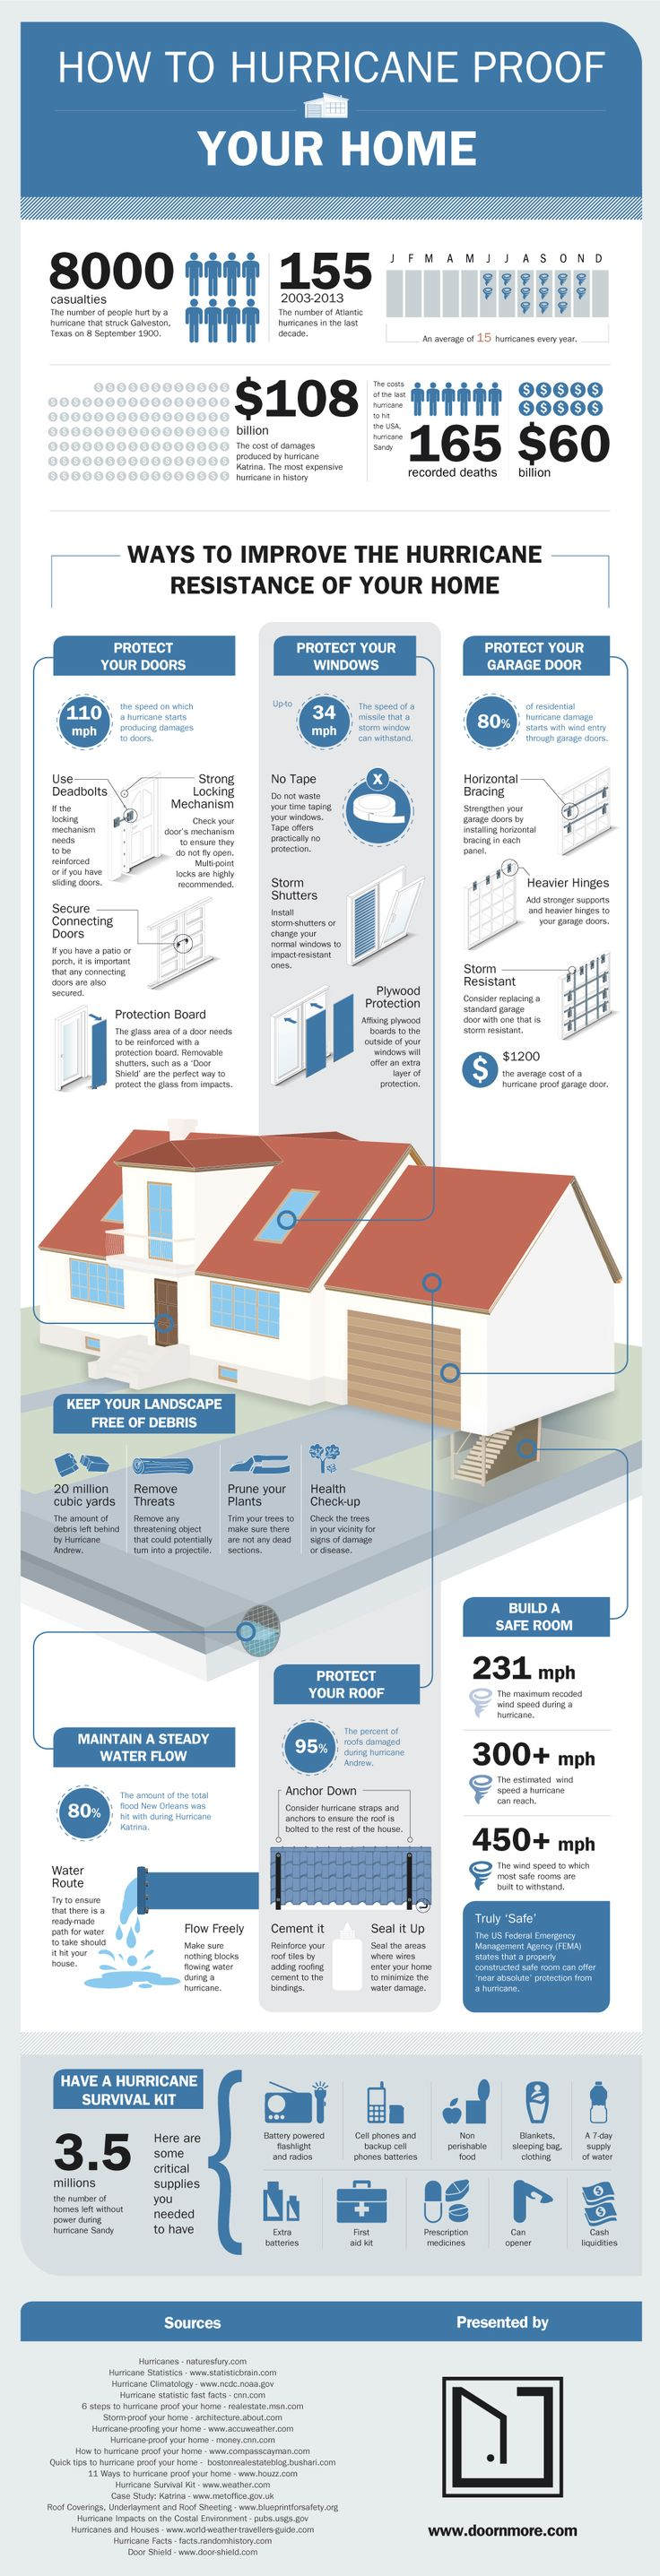 See this infographic on how to hurricane-proof your home. Then find in-depth information on hurricane preparedness from Living Ready University.